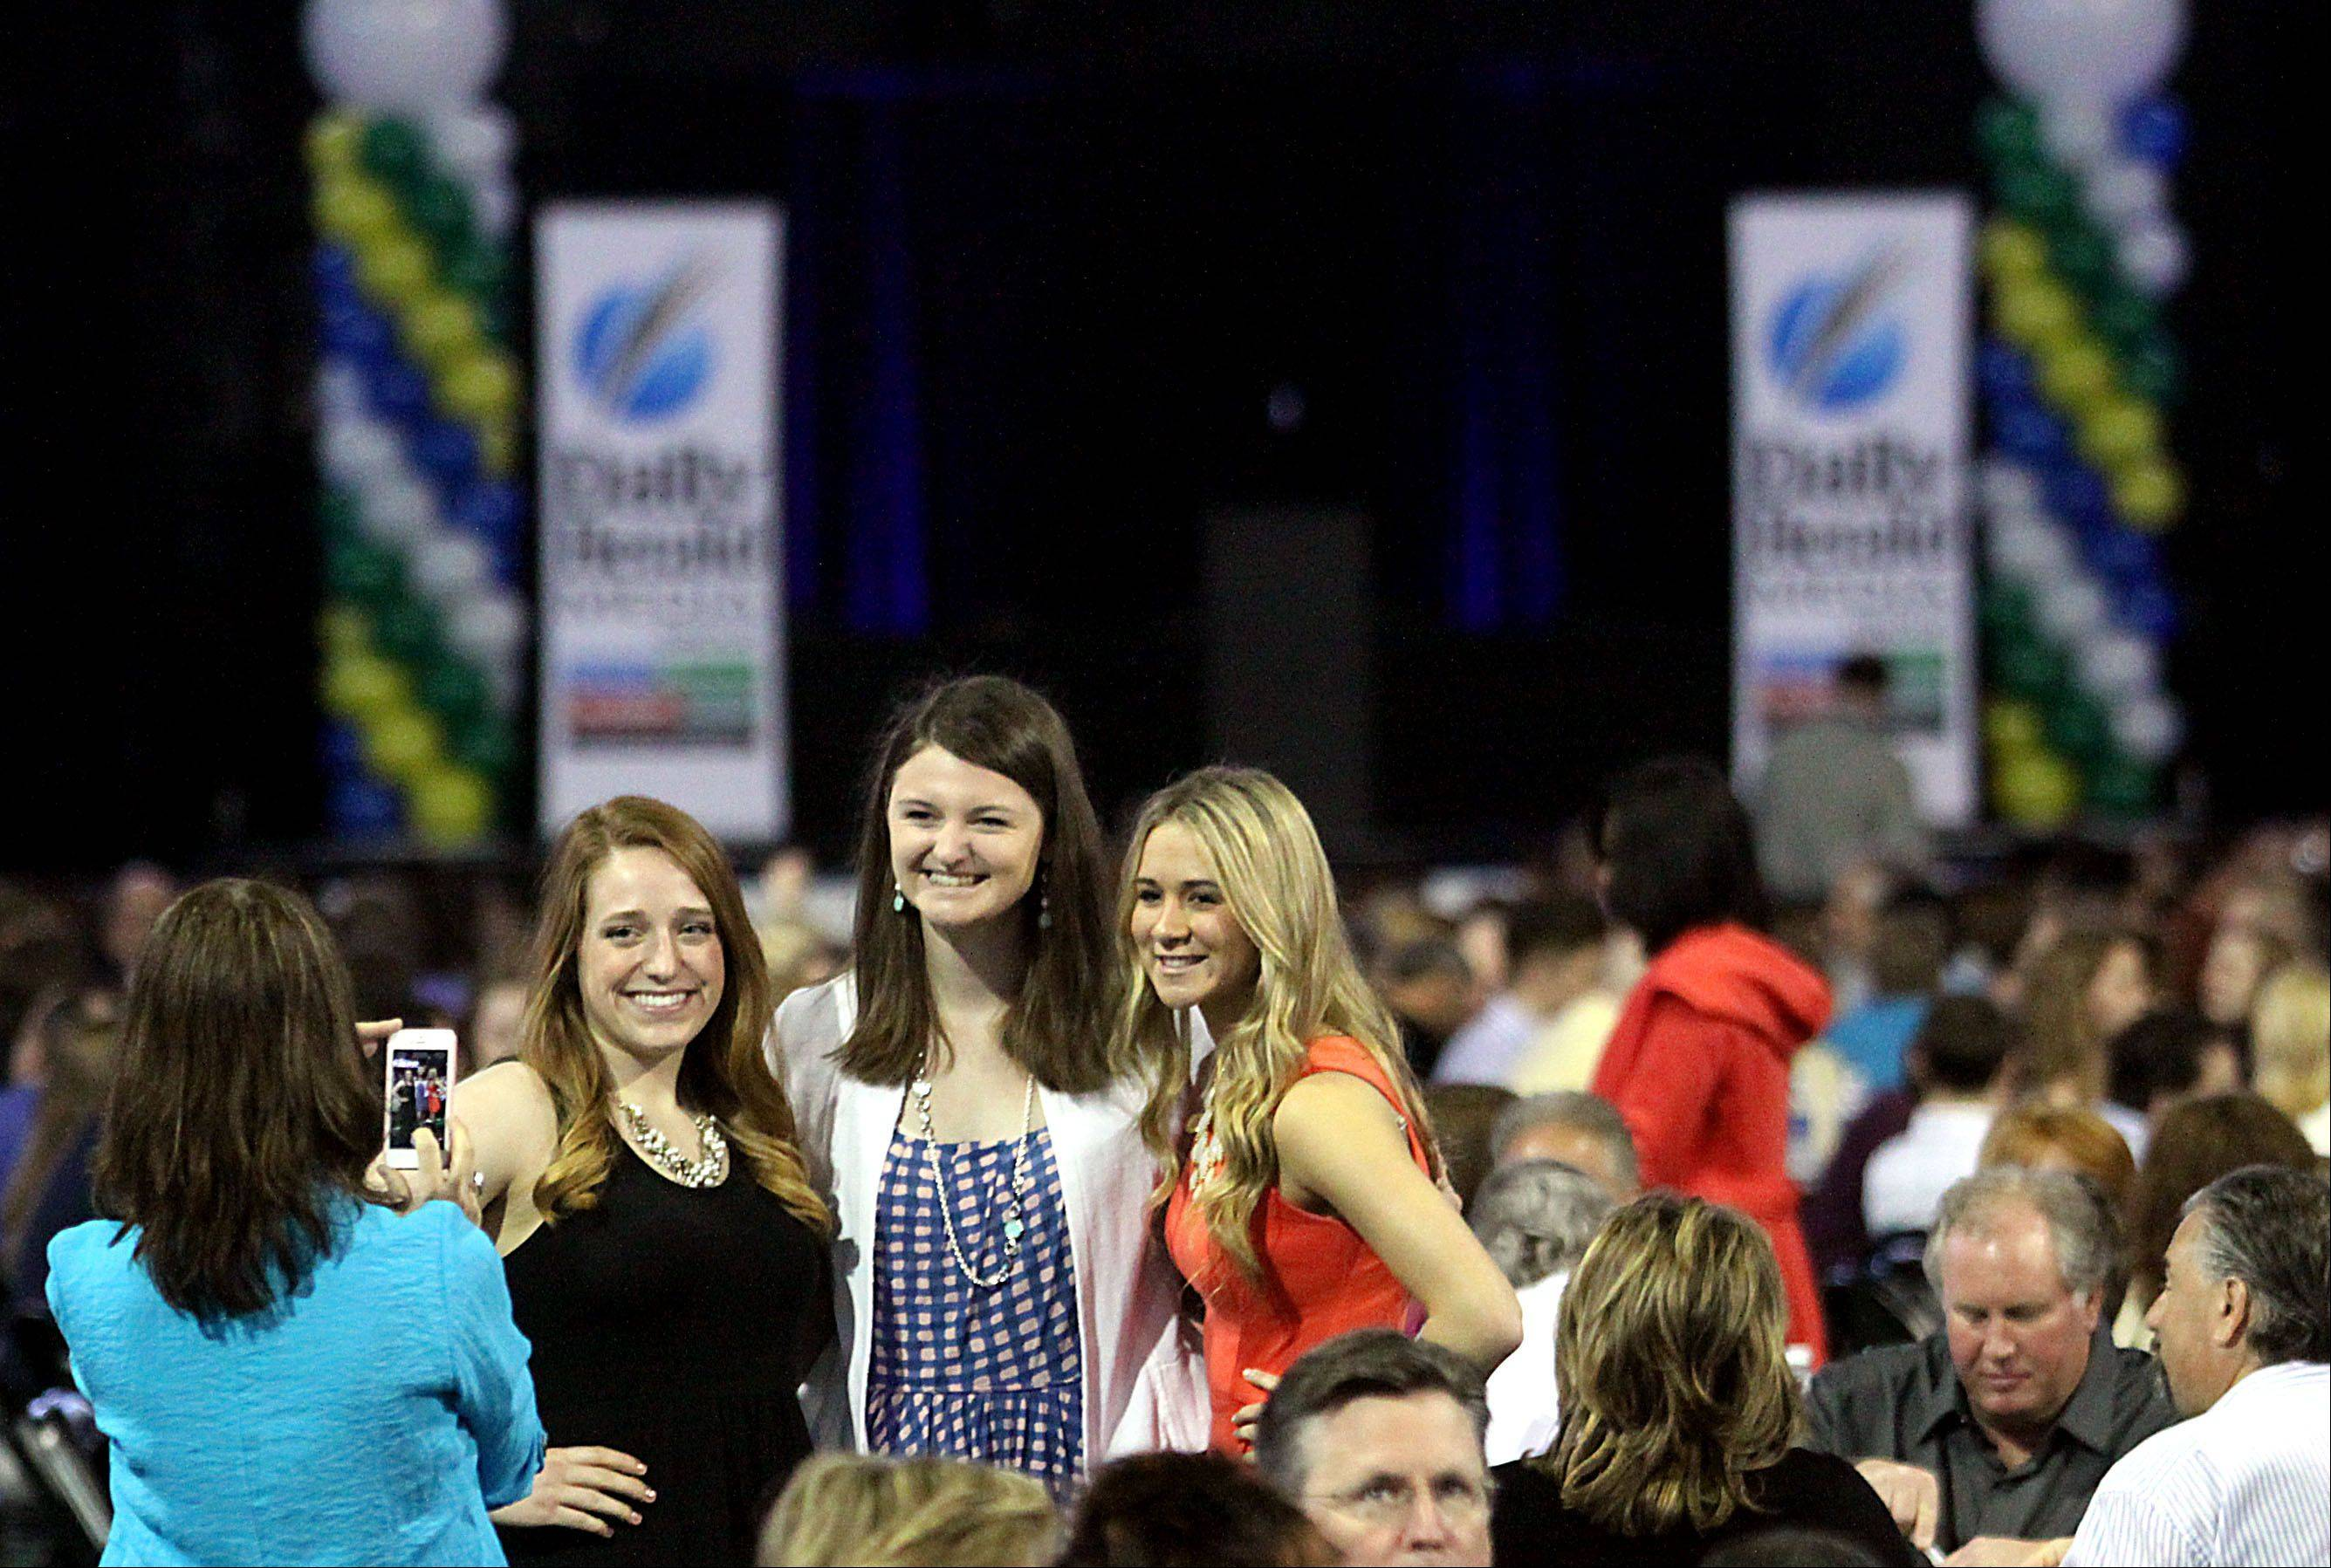 Athletes, from left, Olivia Jakubicek of Cary-Grove, Meri Bennett-Swanson of Vernon Hills, and Ashley McConnell of Fremd pose for pictures during the Daily Herald Prep Sports Excellence Awards Ceremony at Sears Centre Arena in Hoffman Estates on Sunday.